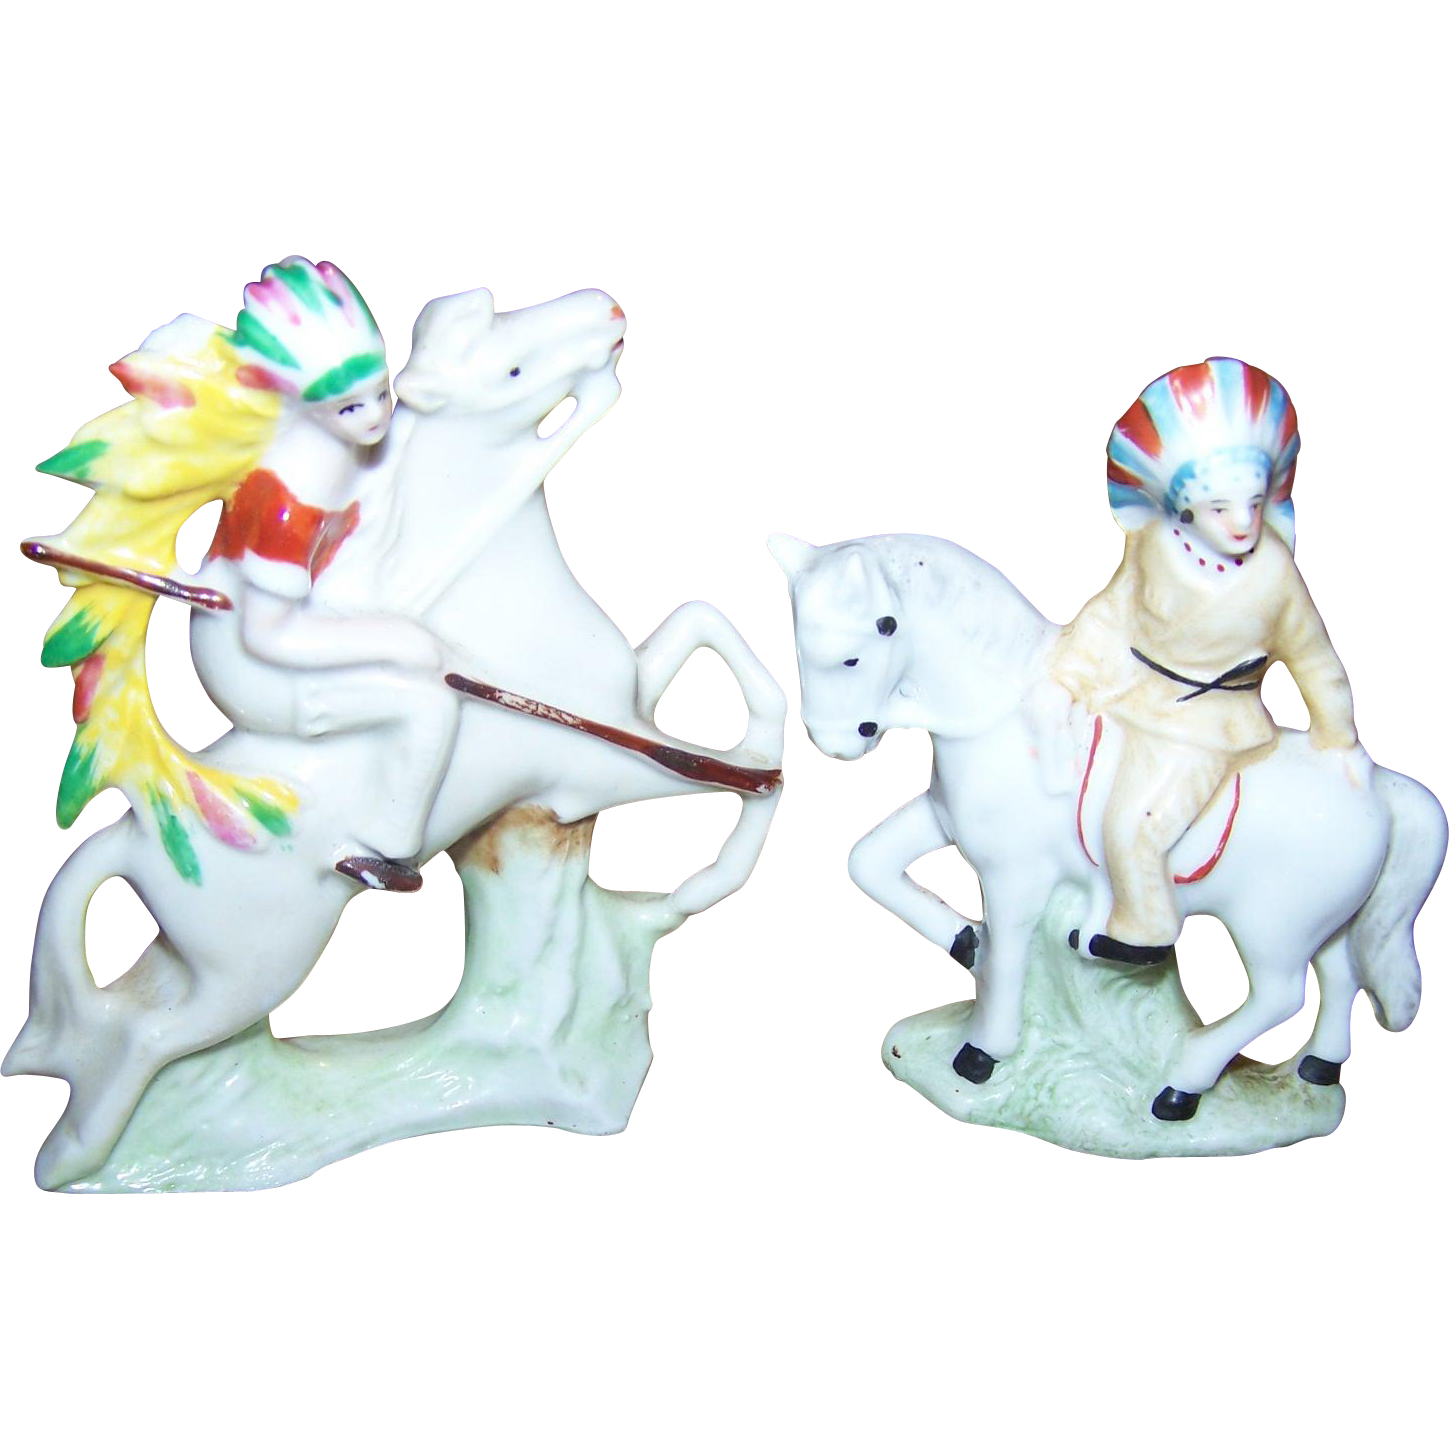 A  Set of Miniature Porcelain Native American Indian Themed Figurines on Horseback Made in Germany